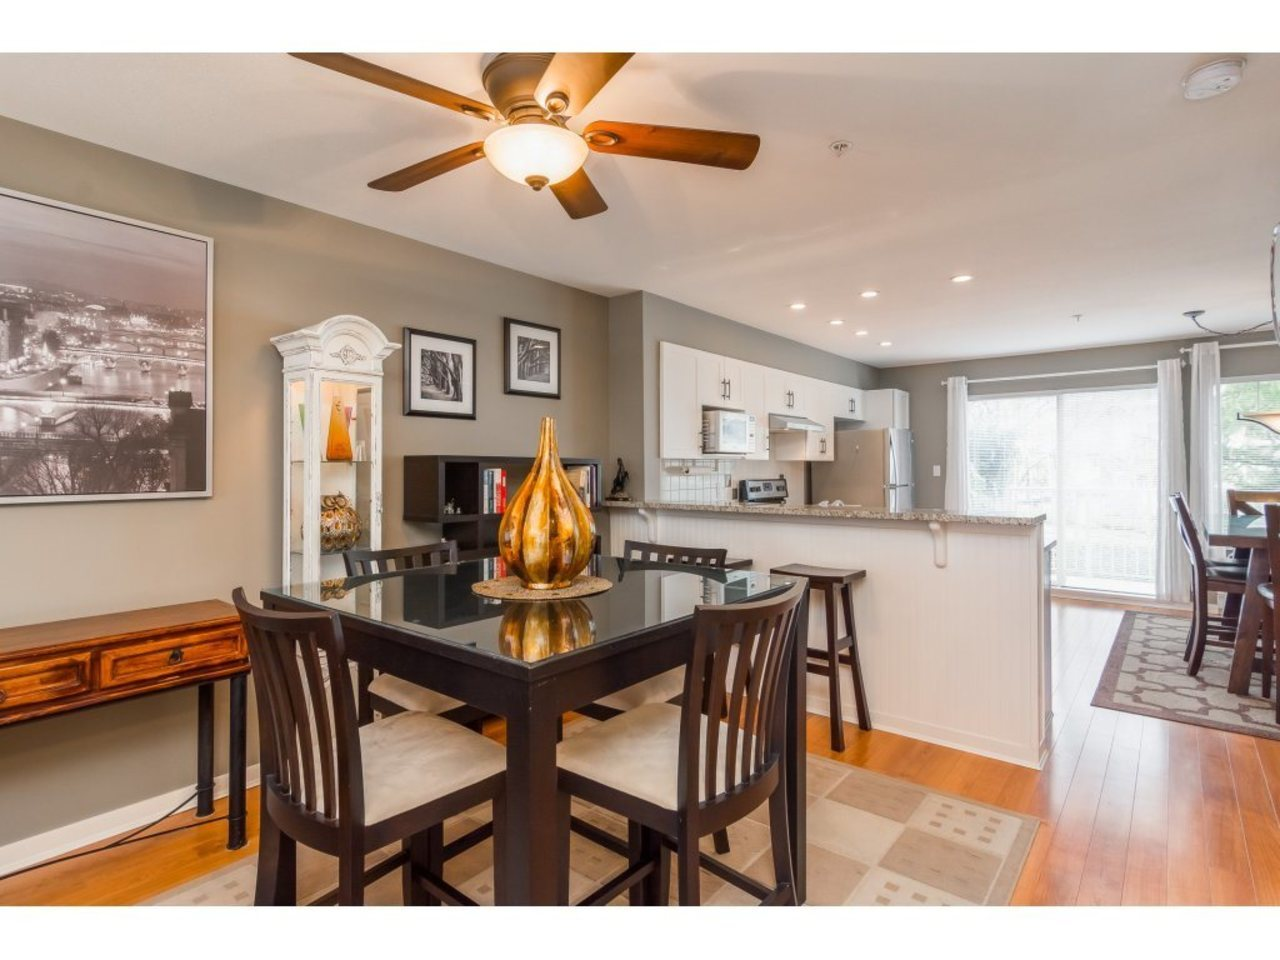 3 Bed, 3 bath townhouse by SolonREM.com at 20 - 20761 Duncan Way, Langley City, Langley